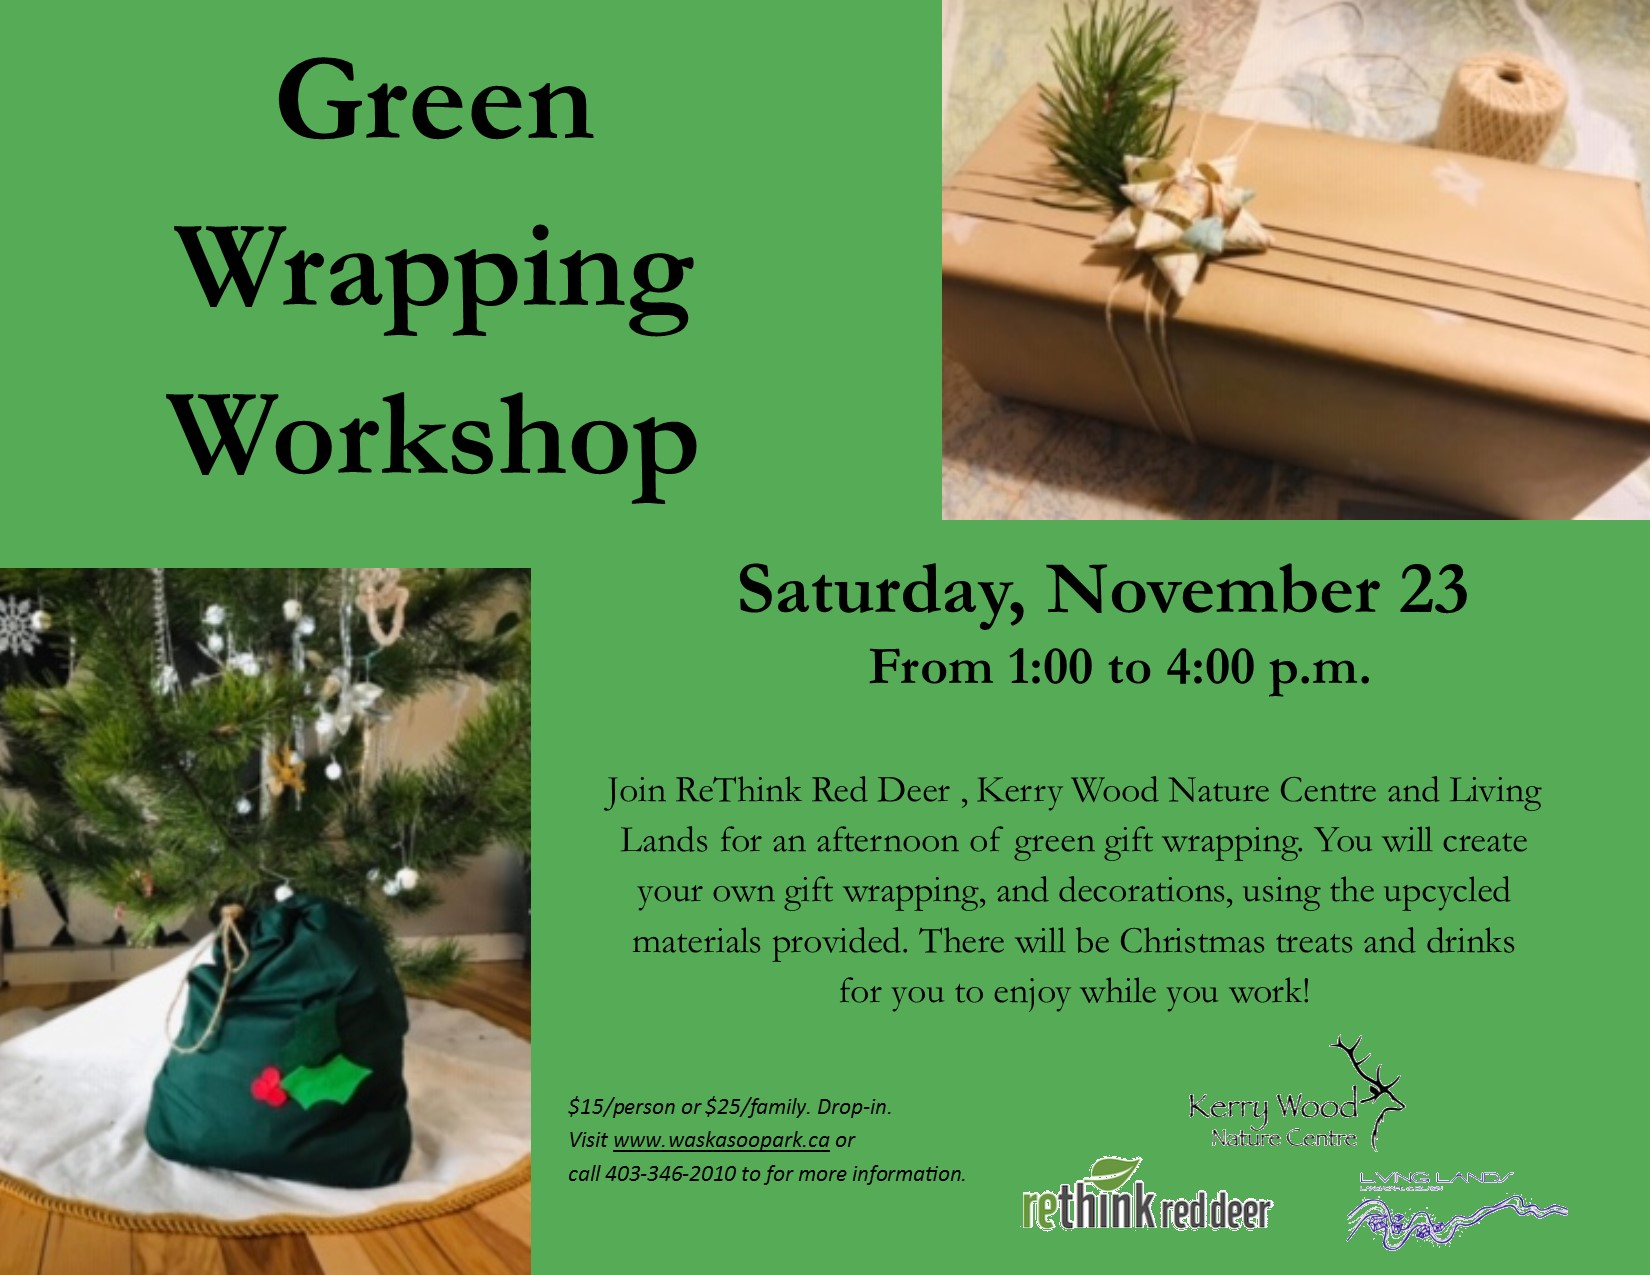 Green Wrapping Workshop